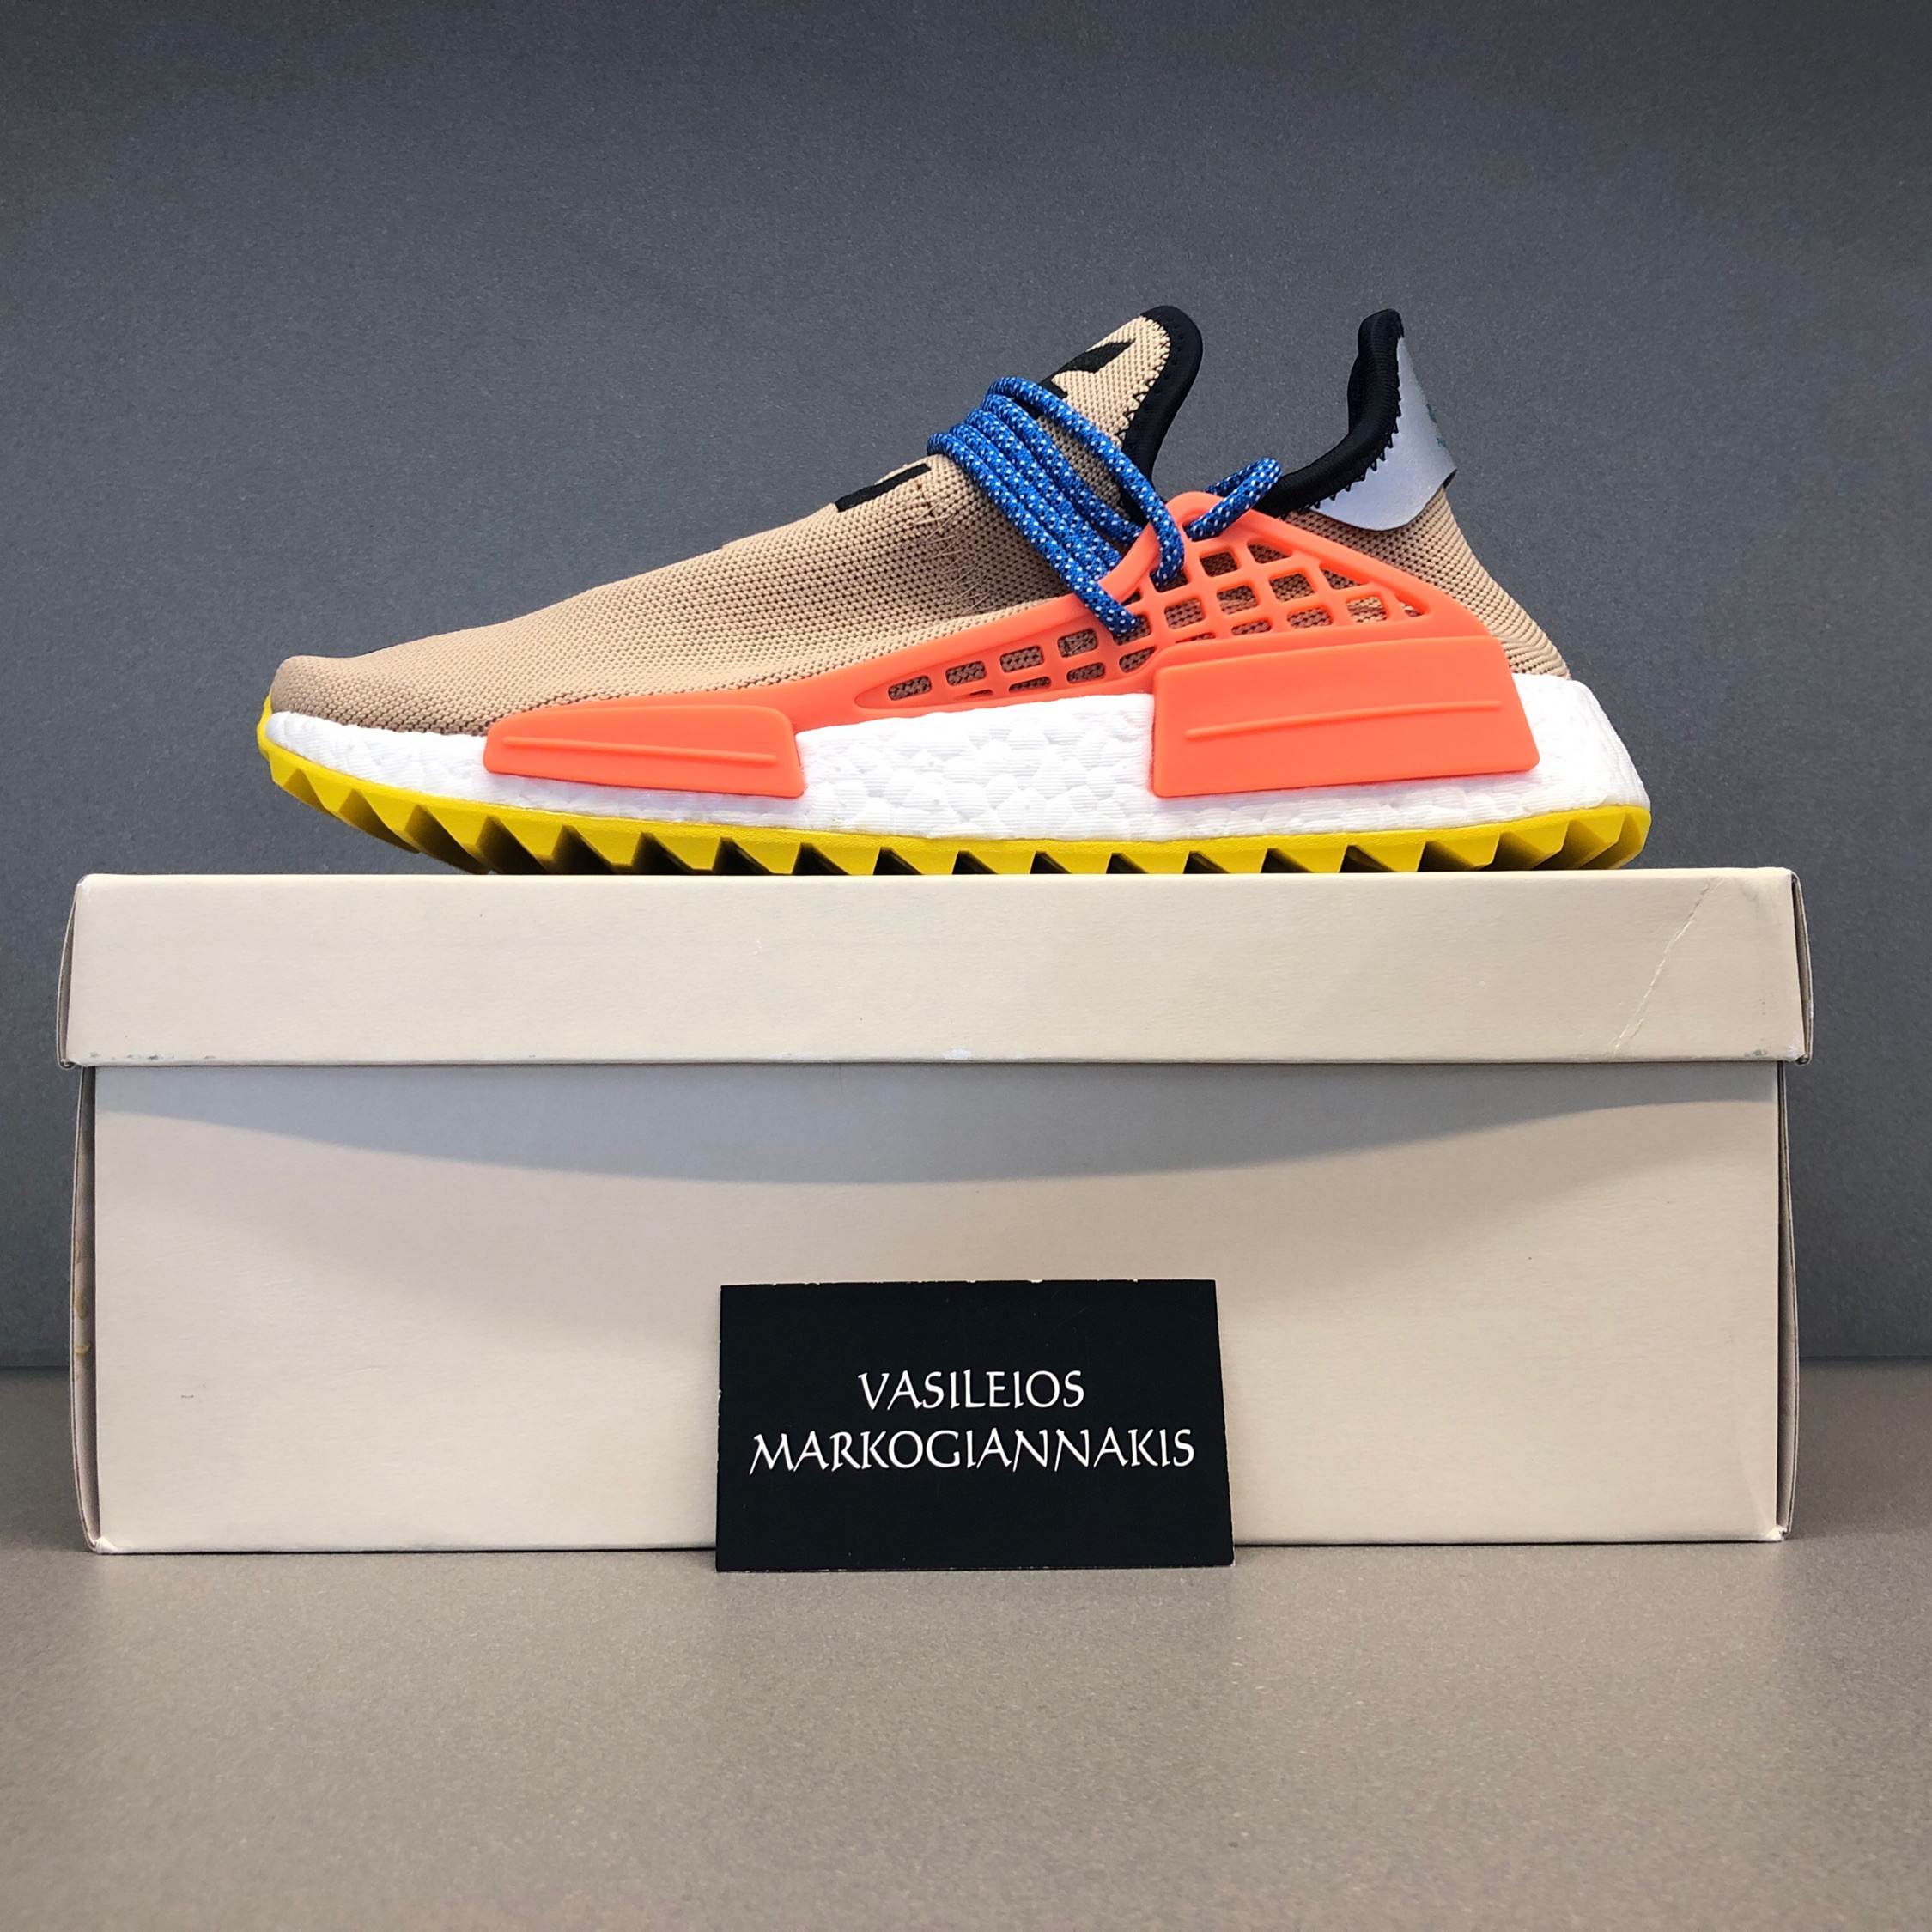 new arrival 313c0 5d8e9 Adidas Pw Human Race Nmd Tr Pharrell Pale Nude